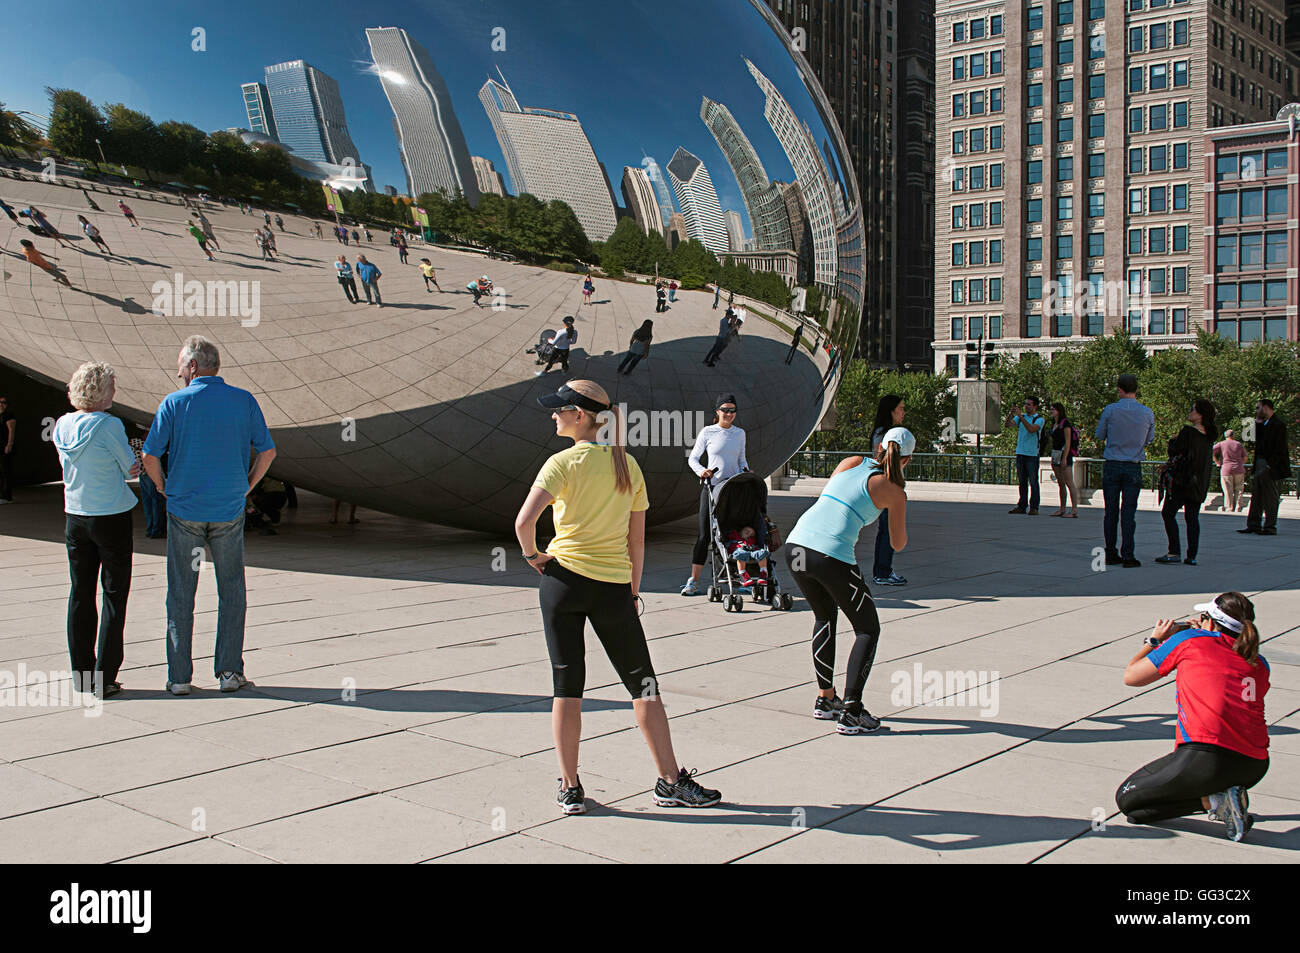 People posing for photos in front of Cloud Gate (the Bean) in Millennium Park, Chicago, Illinois marathon weekend. - Stock Image